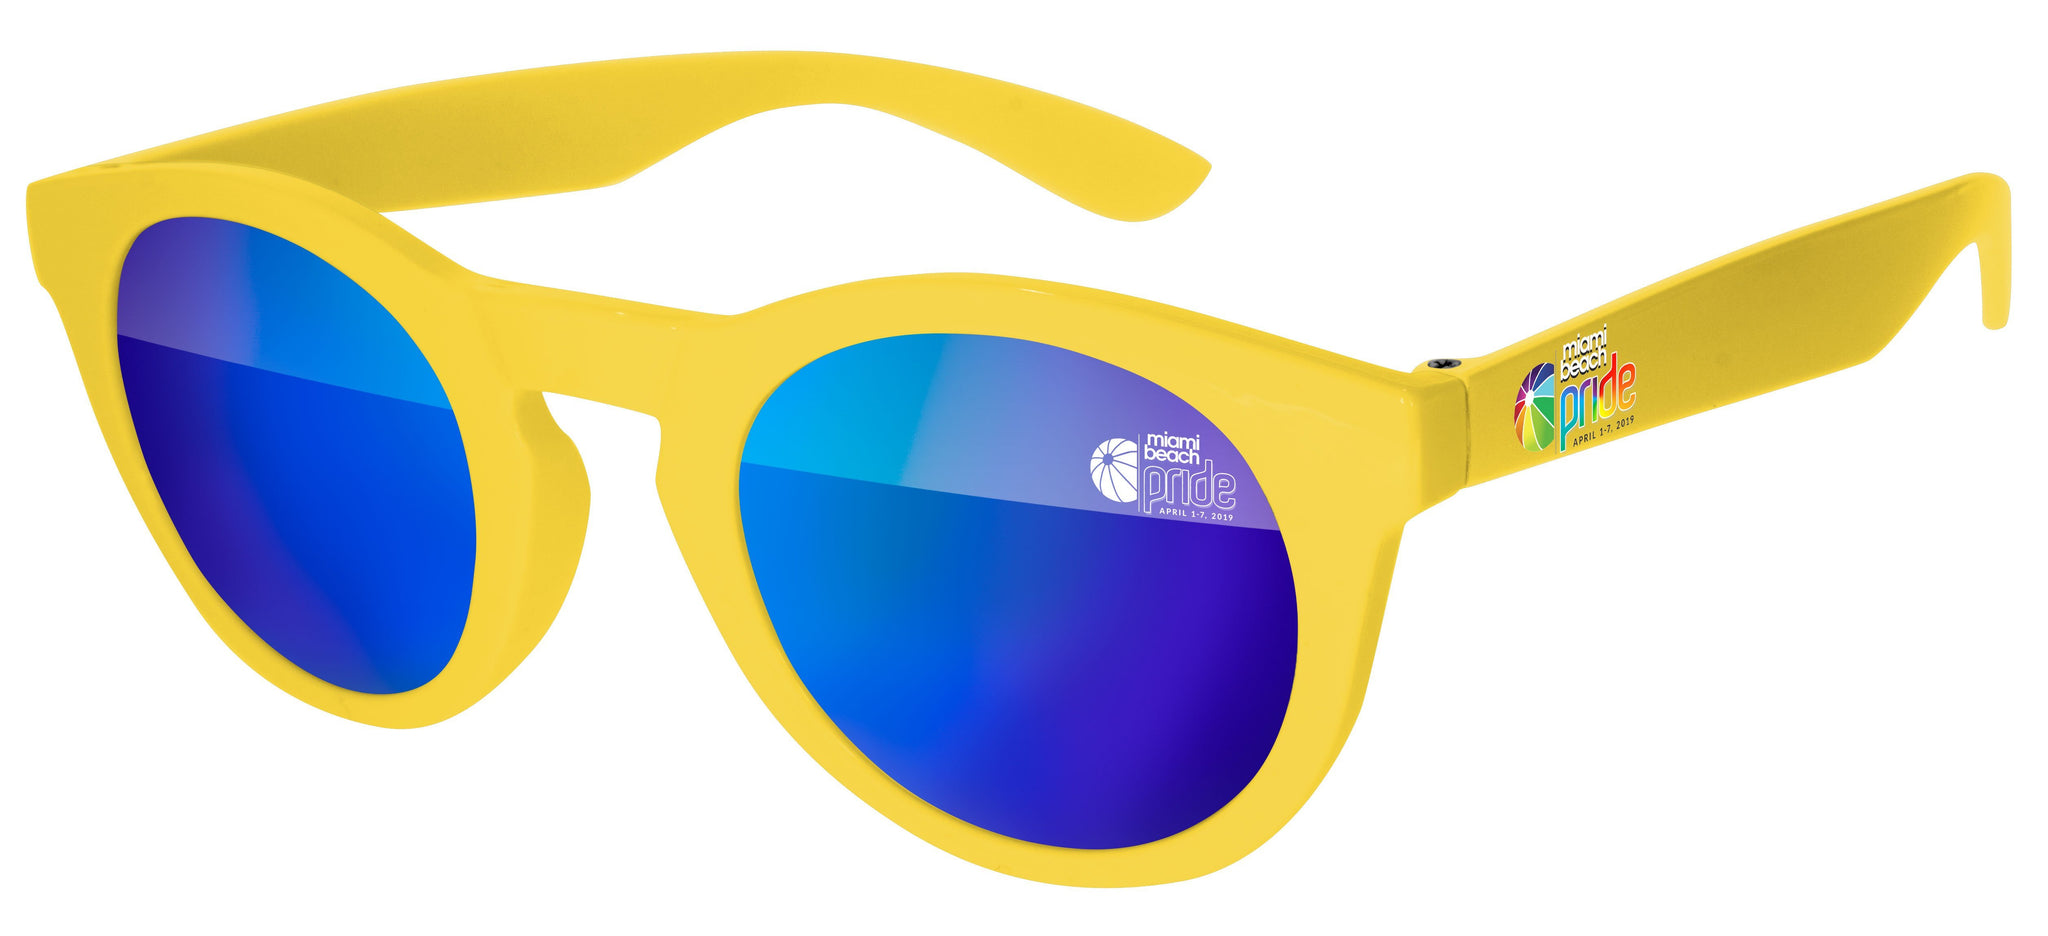 DM520 - Pride Andy Mirror Promotional Sunglasses w/ 1-color lens imprint & full-color temple imprint